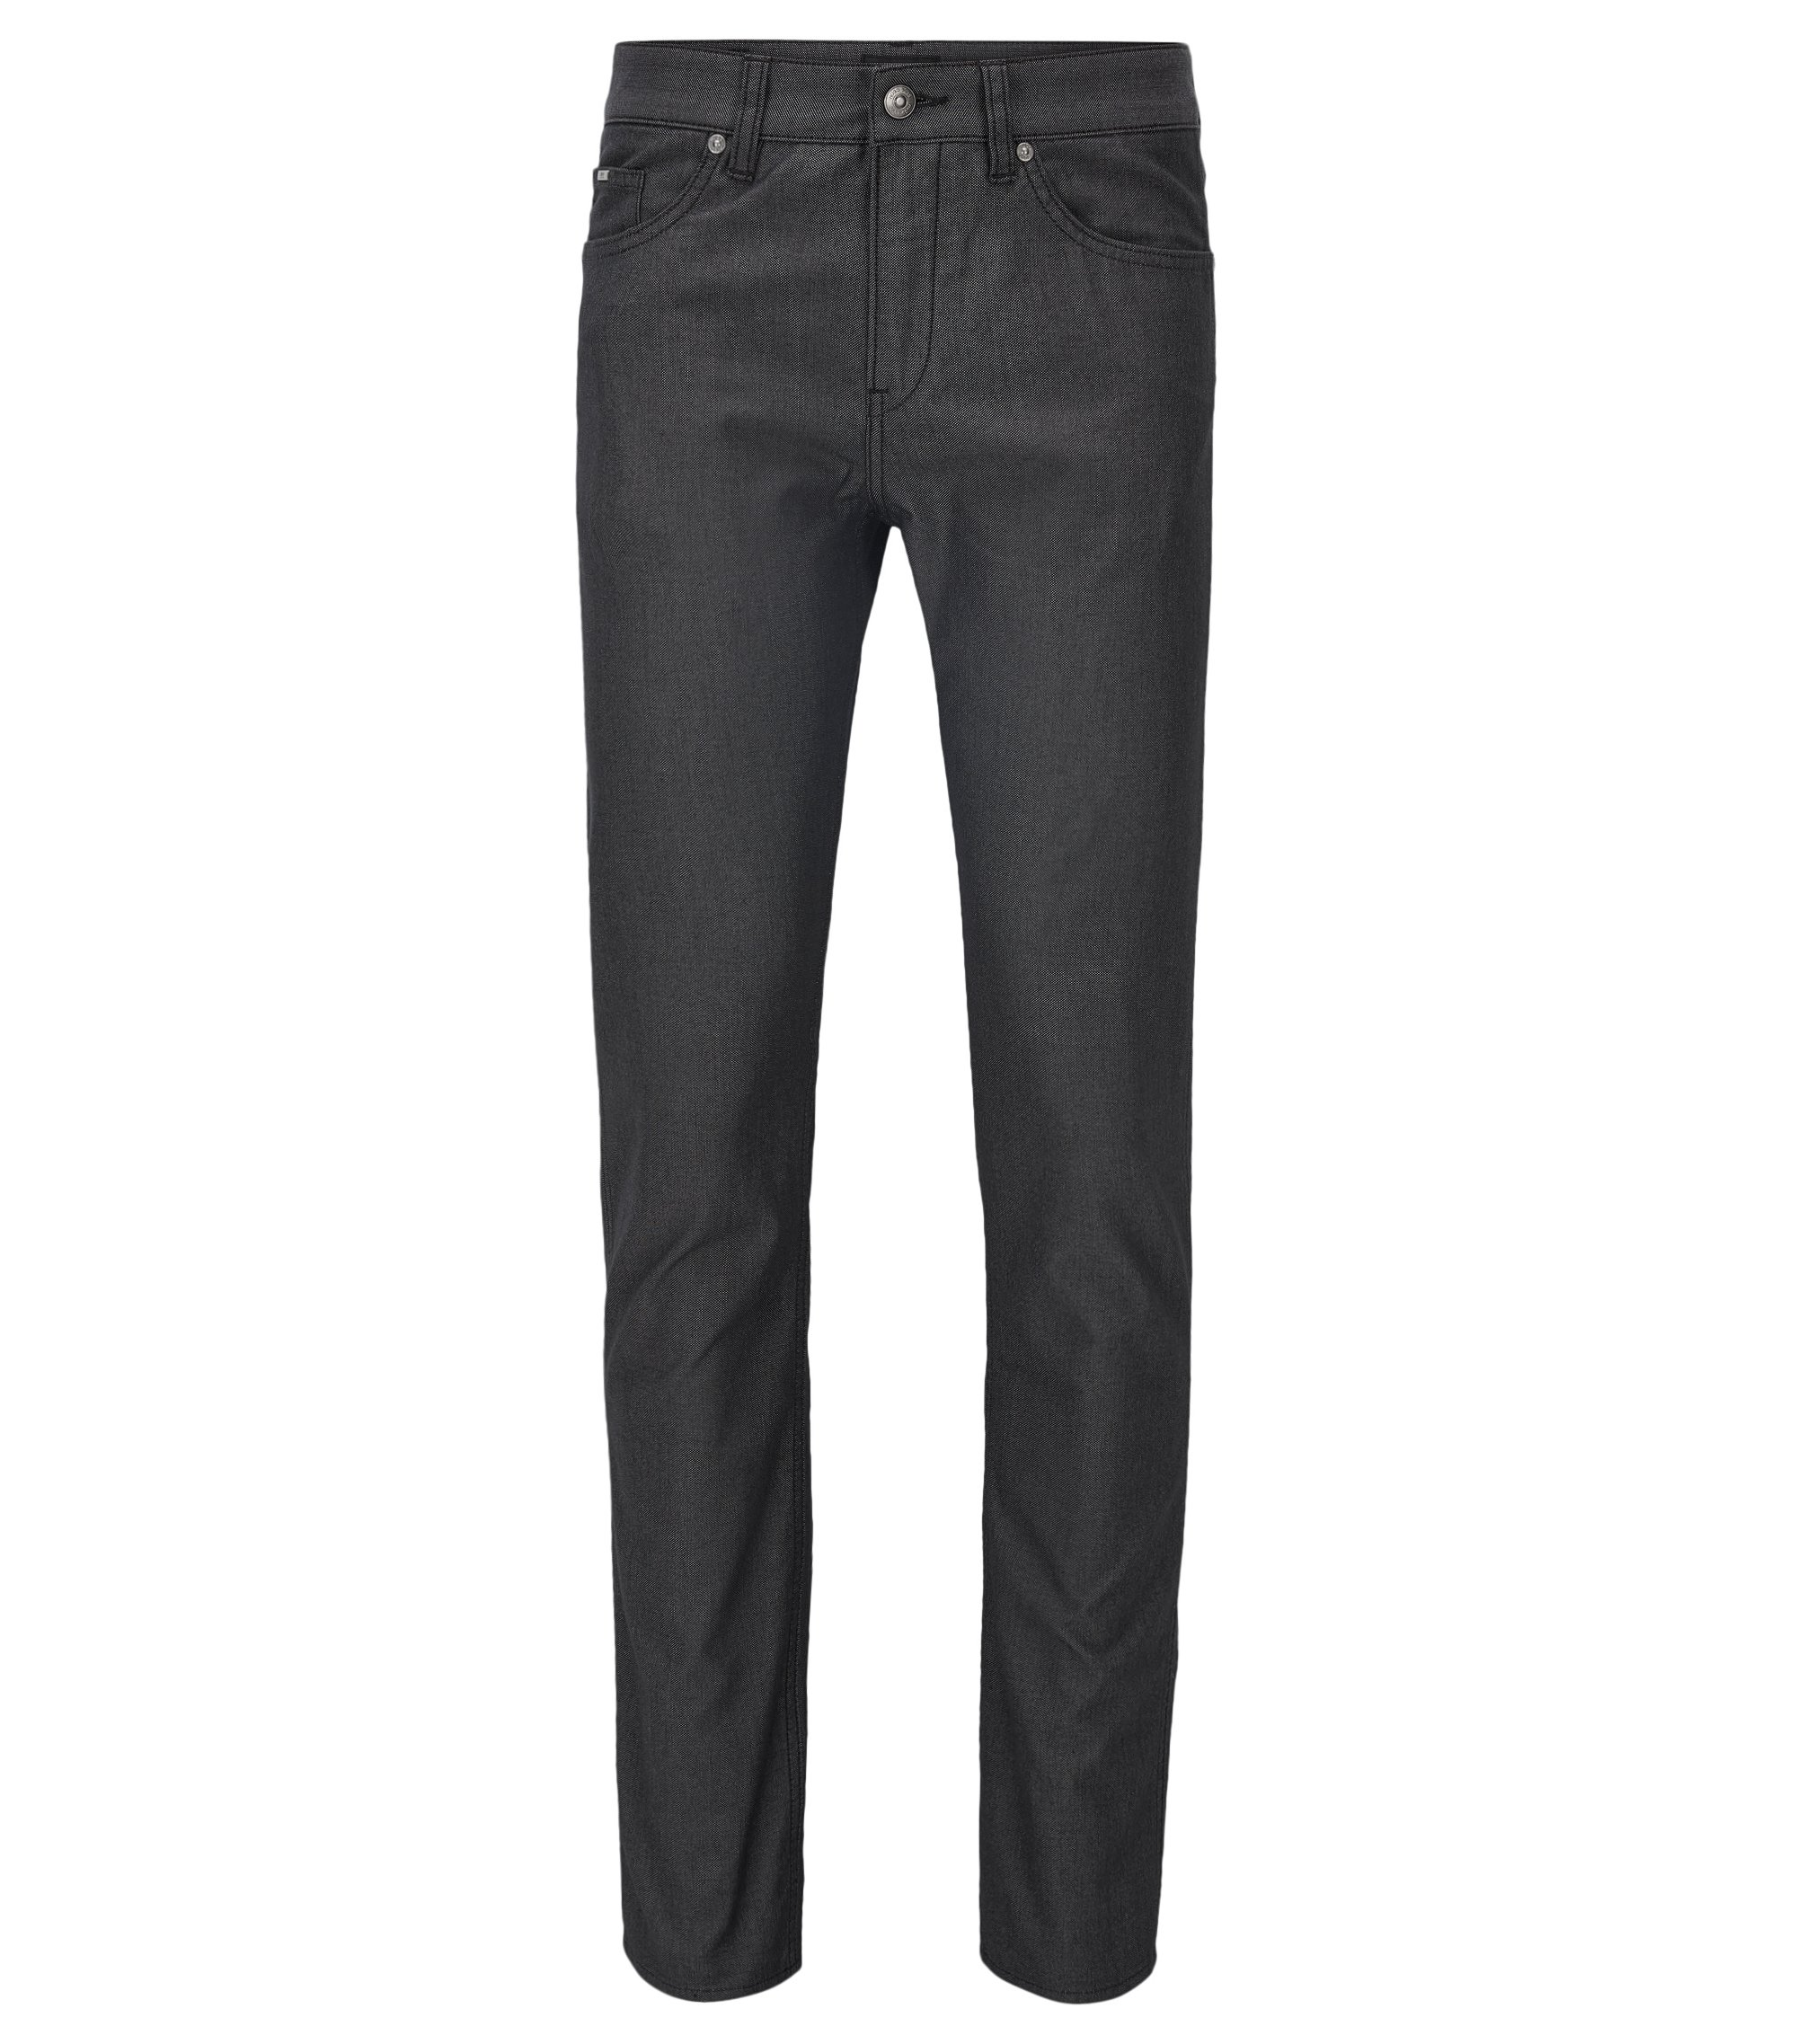 HUGO BOSS Jean Slim Fit teint en pièce en twill de coton stretch